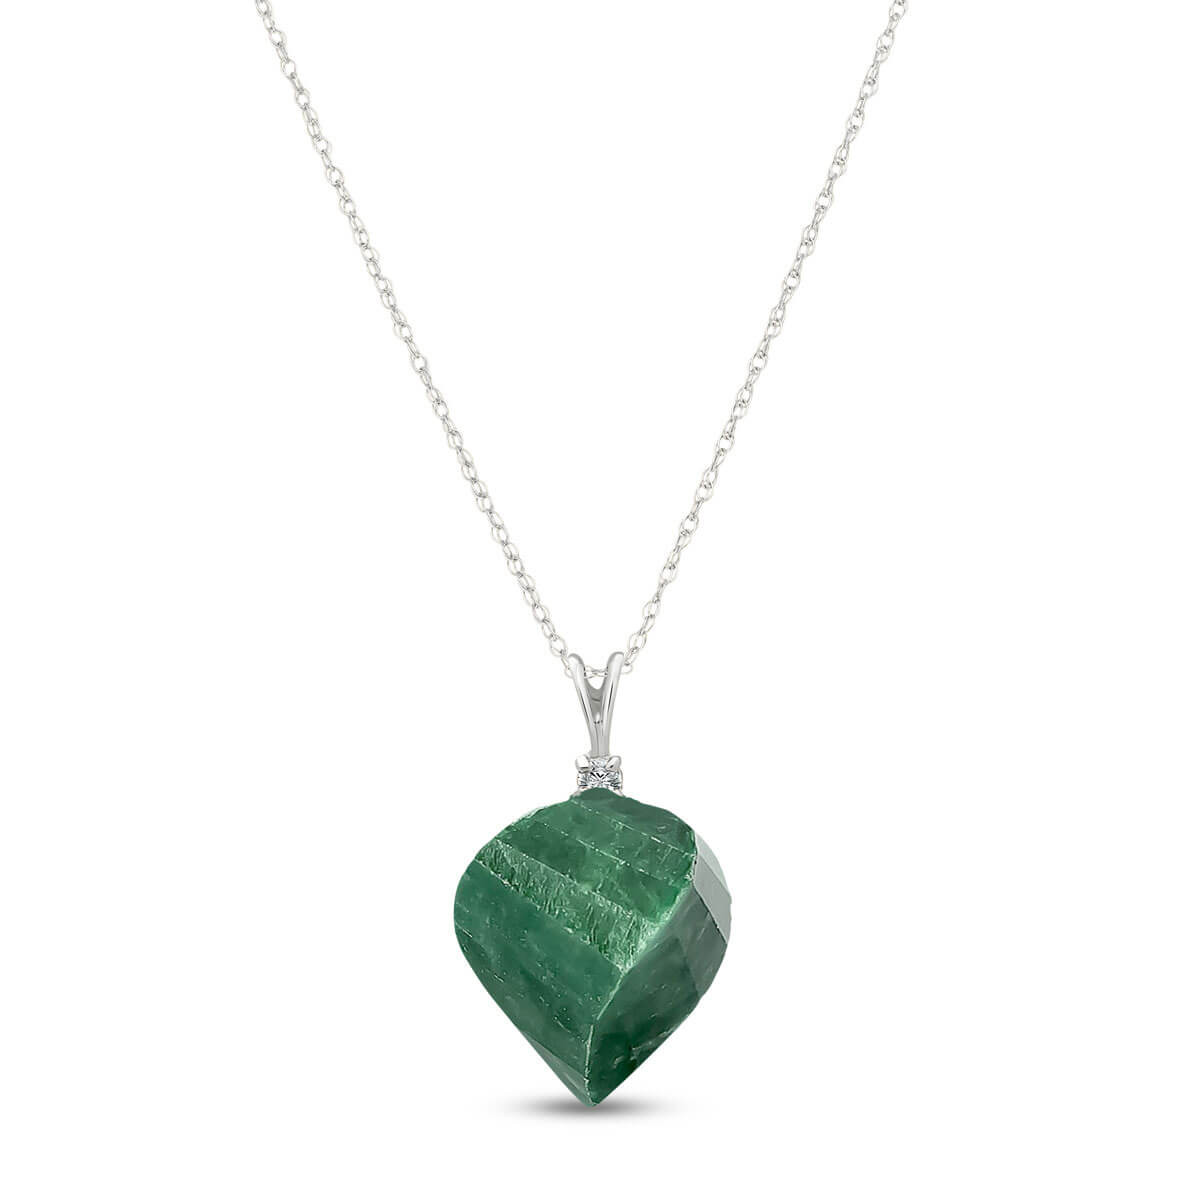 Twisted Briolette Cut Emerald Pendant Necklace 15.3 ctw in 9ct White Gold